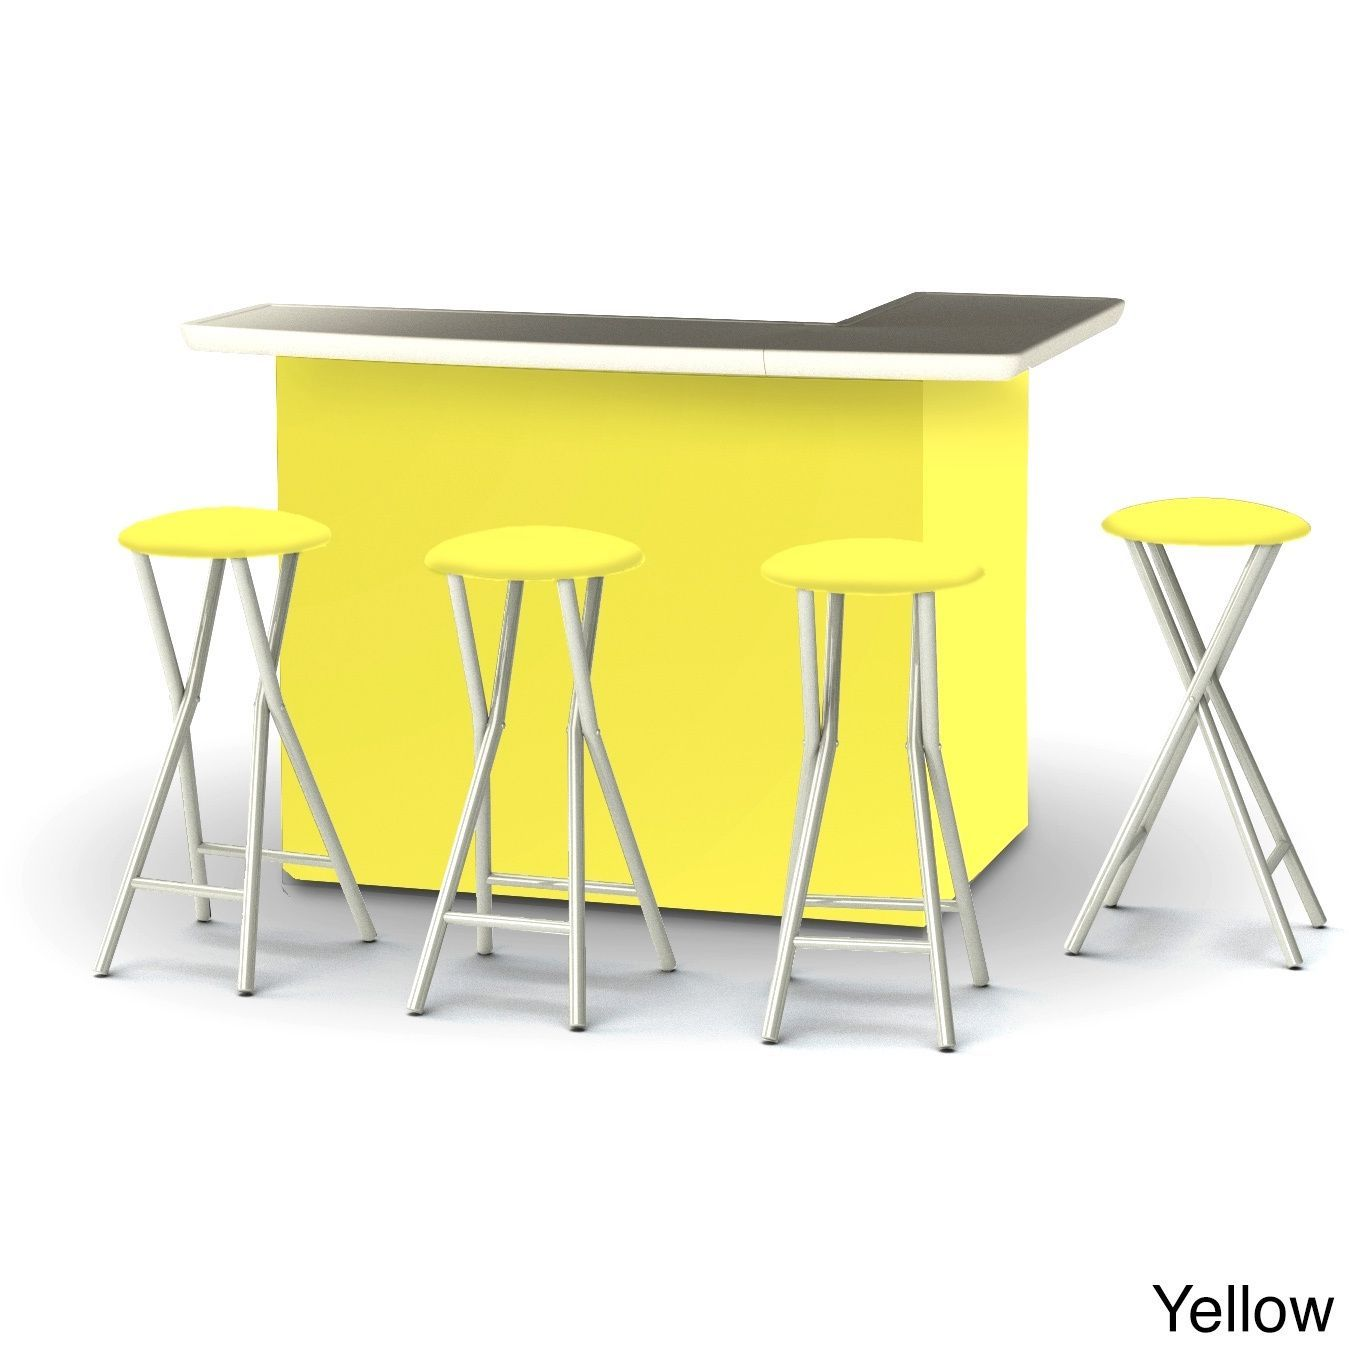 Best of times solid colors portable patio bar with stools solid